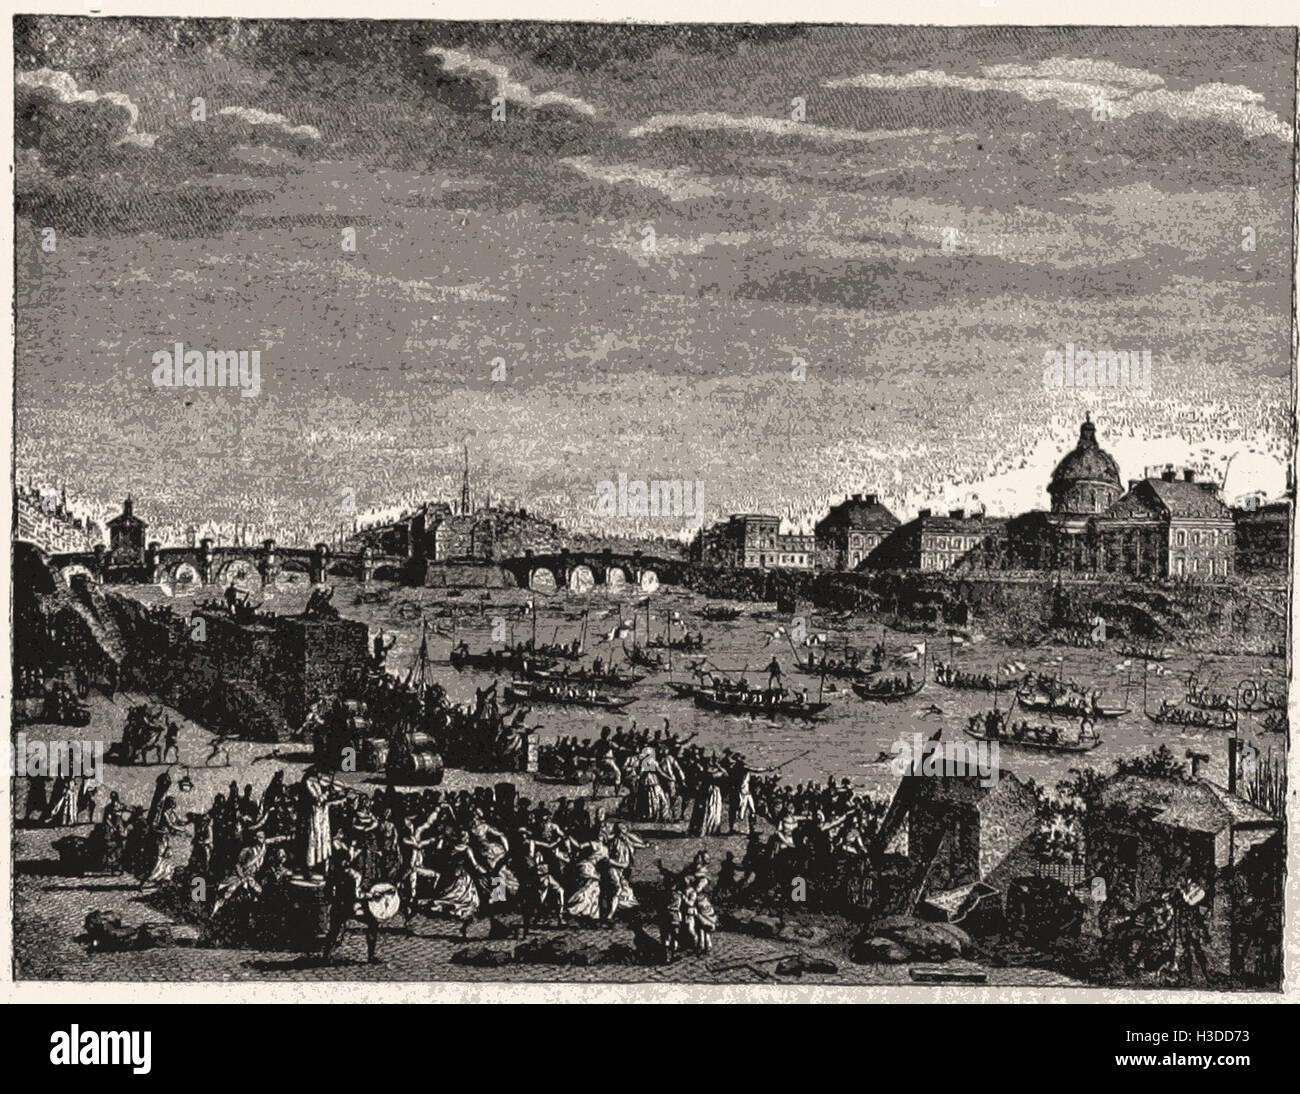 FESTIVITIES UPON THE RIVER SEINE, EVENING, JULY 14, 1790 - Stock Image